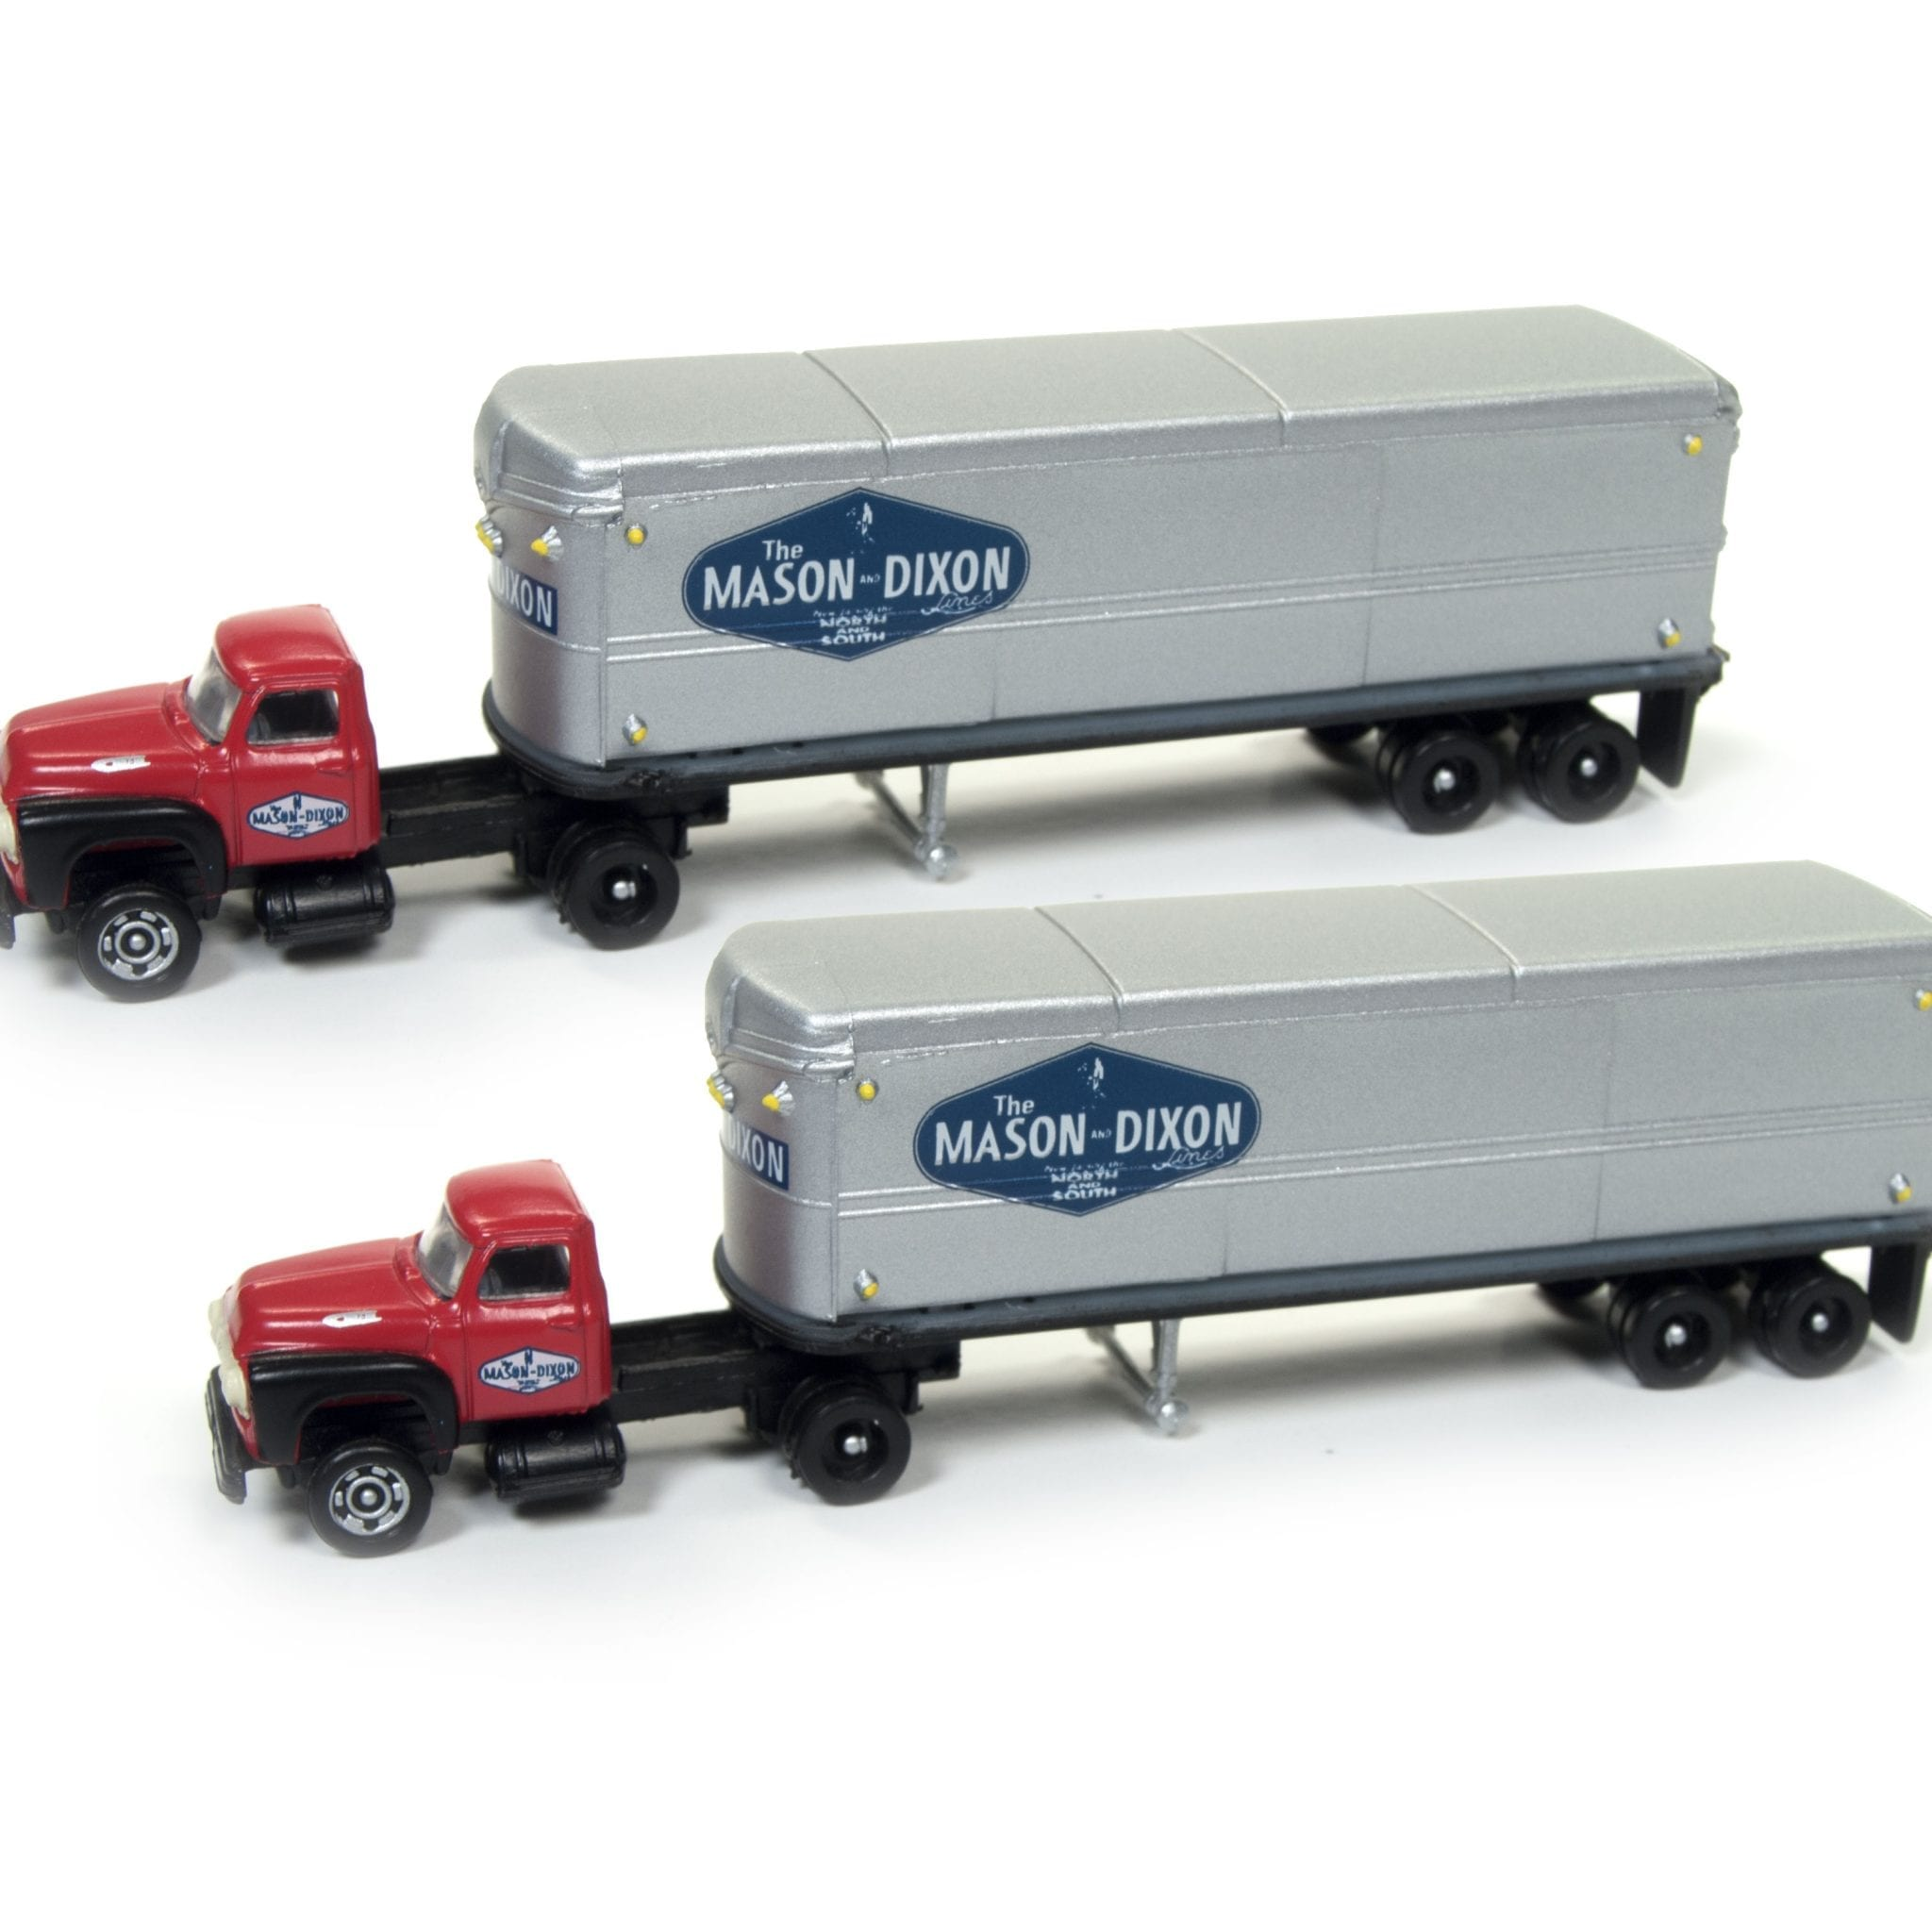 1954 ford tractor  u0026 trailer set  the mason dixon line